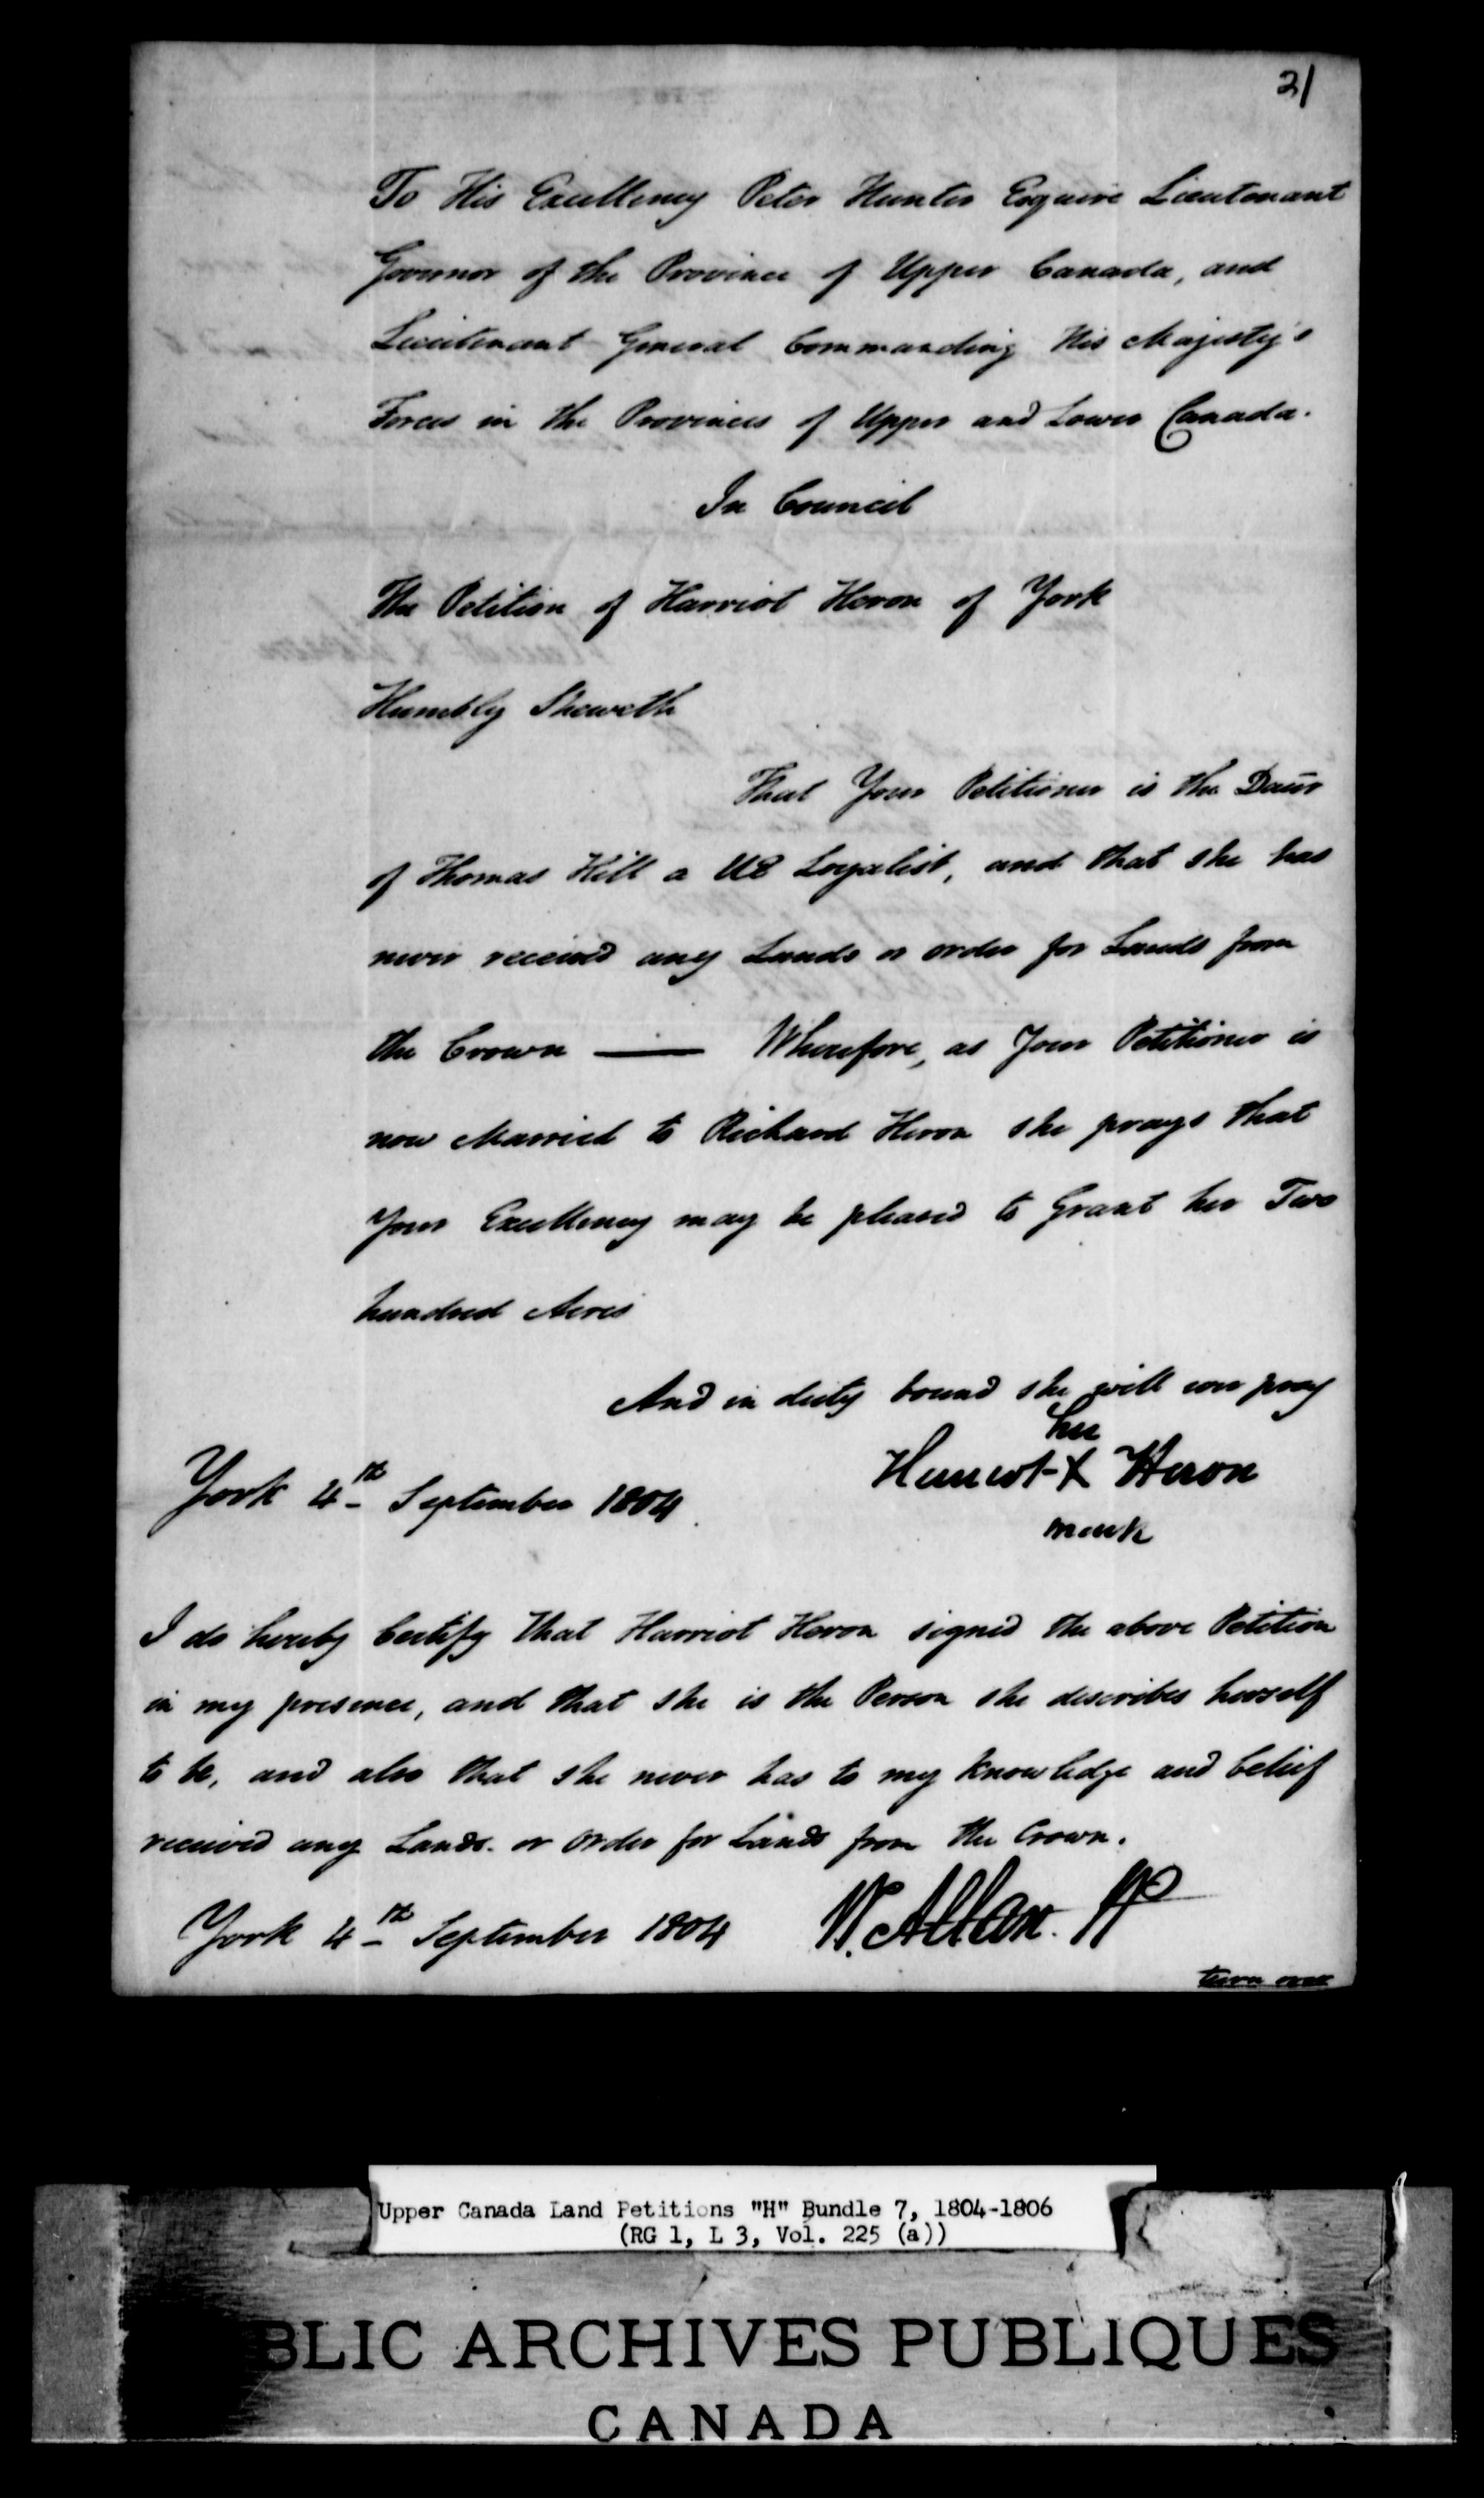 Title: Upper Canada Land Petitions (1763-1865) - Mikan Number: 205131 - Microform: c-2045